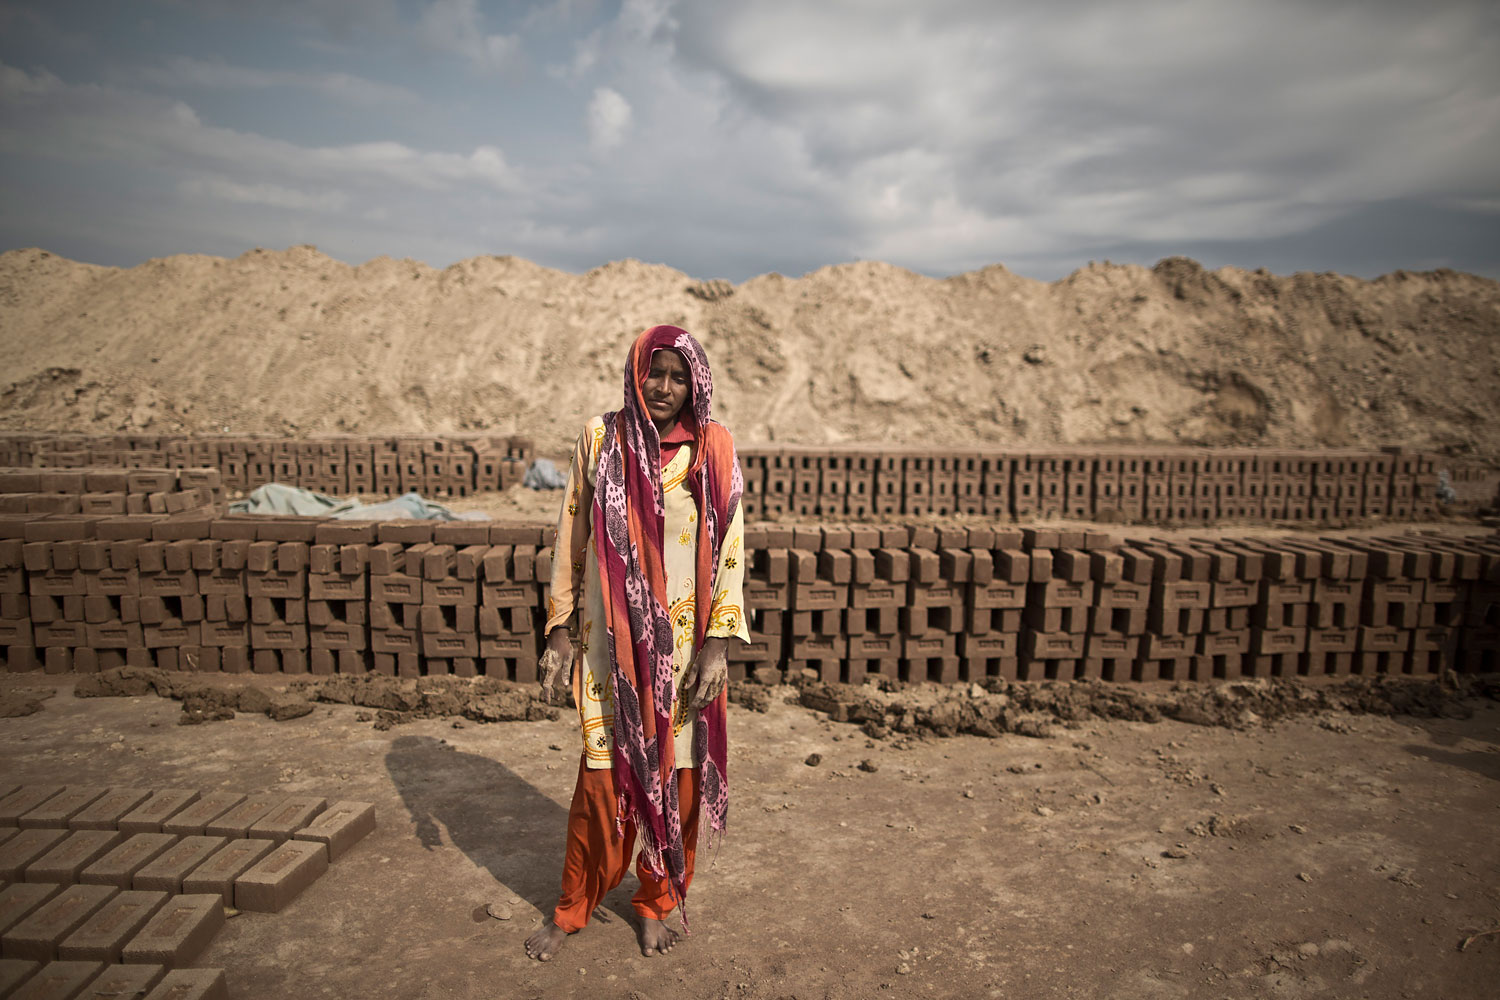 Raina Anwar, 24, a Pakistani brick factory worker, poses for a picture at the site of her work in Mandra, near Rawalpindi, Pakistan, March 5, 2014. Raina and her husband are in debt to their employer the amount of 190,000 rupees (approximately $1900).